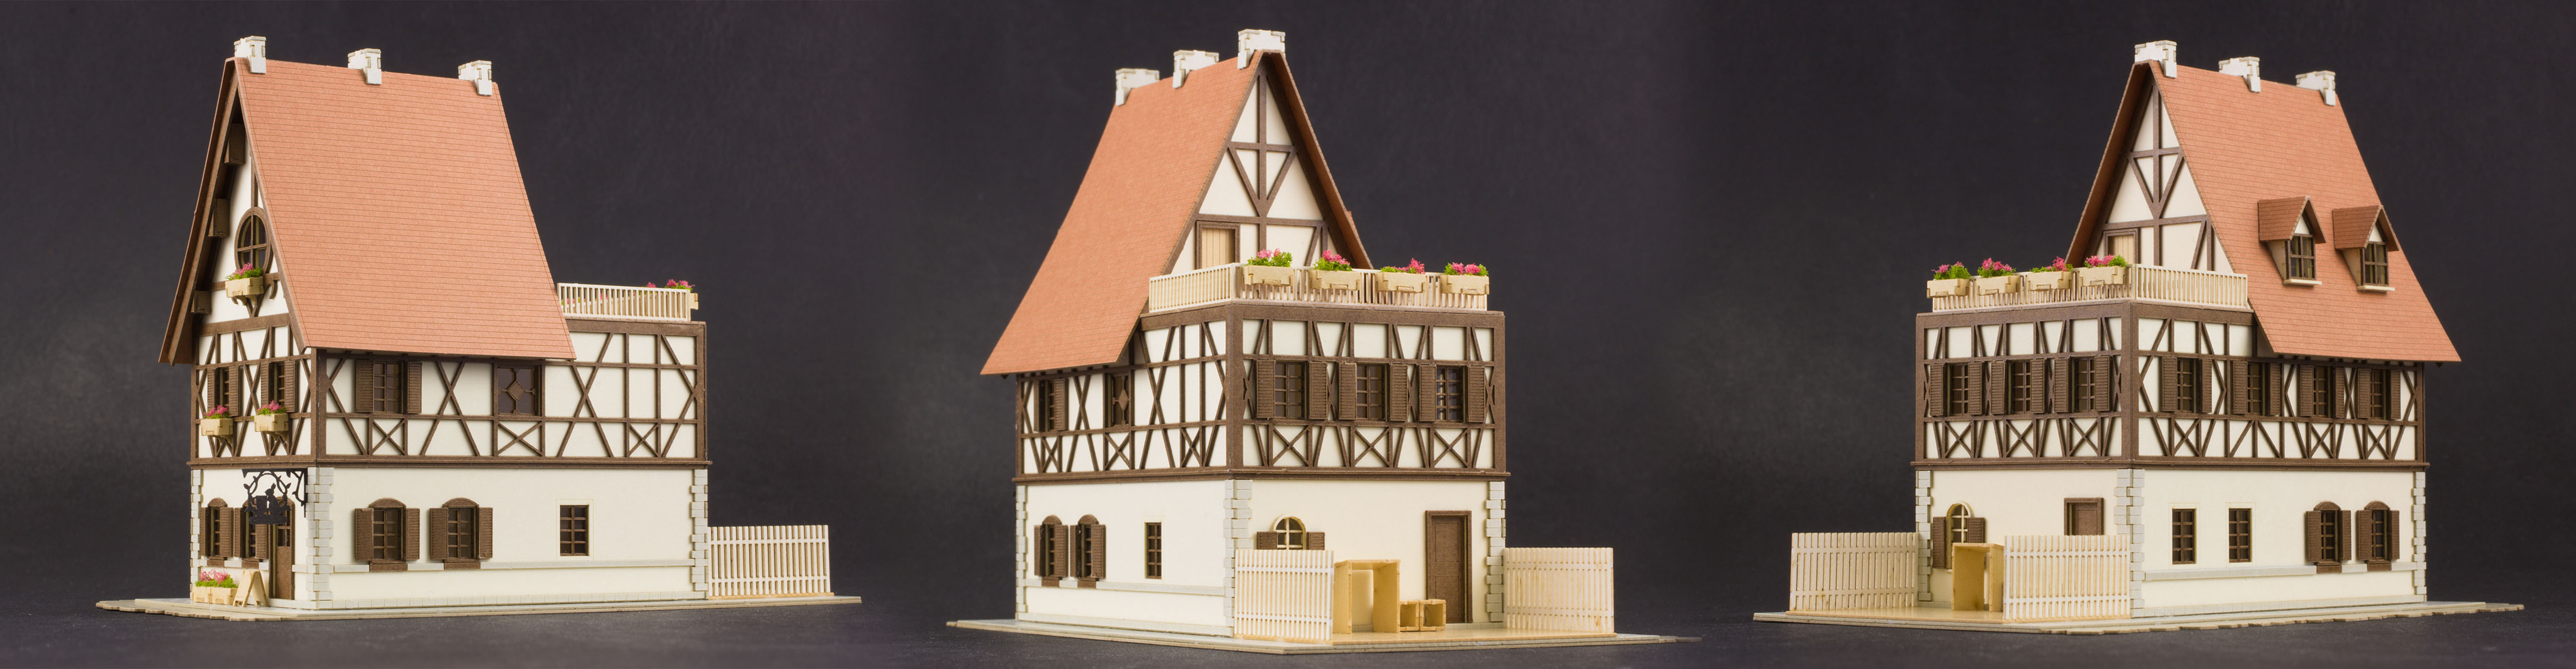 IS THE ORDER ANITECTURE RABBIT HOUSE 1/150 PAPER MDL KIT